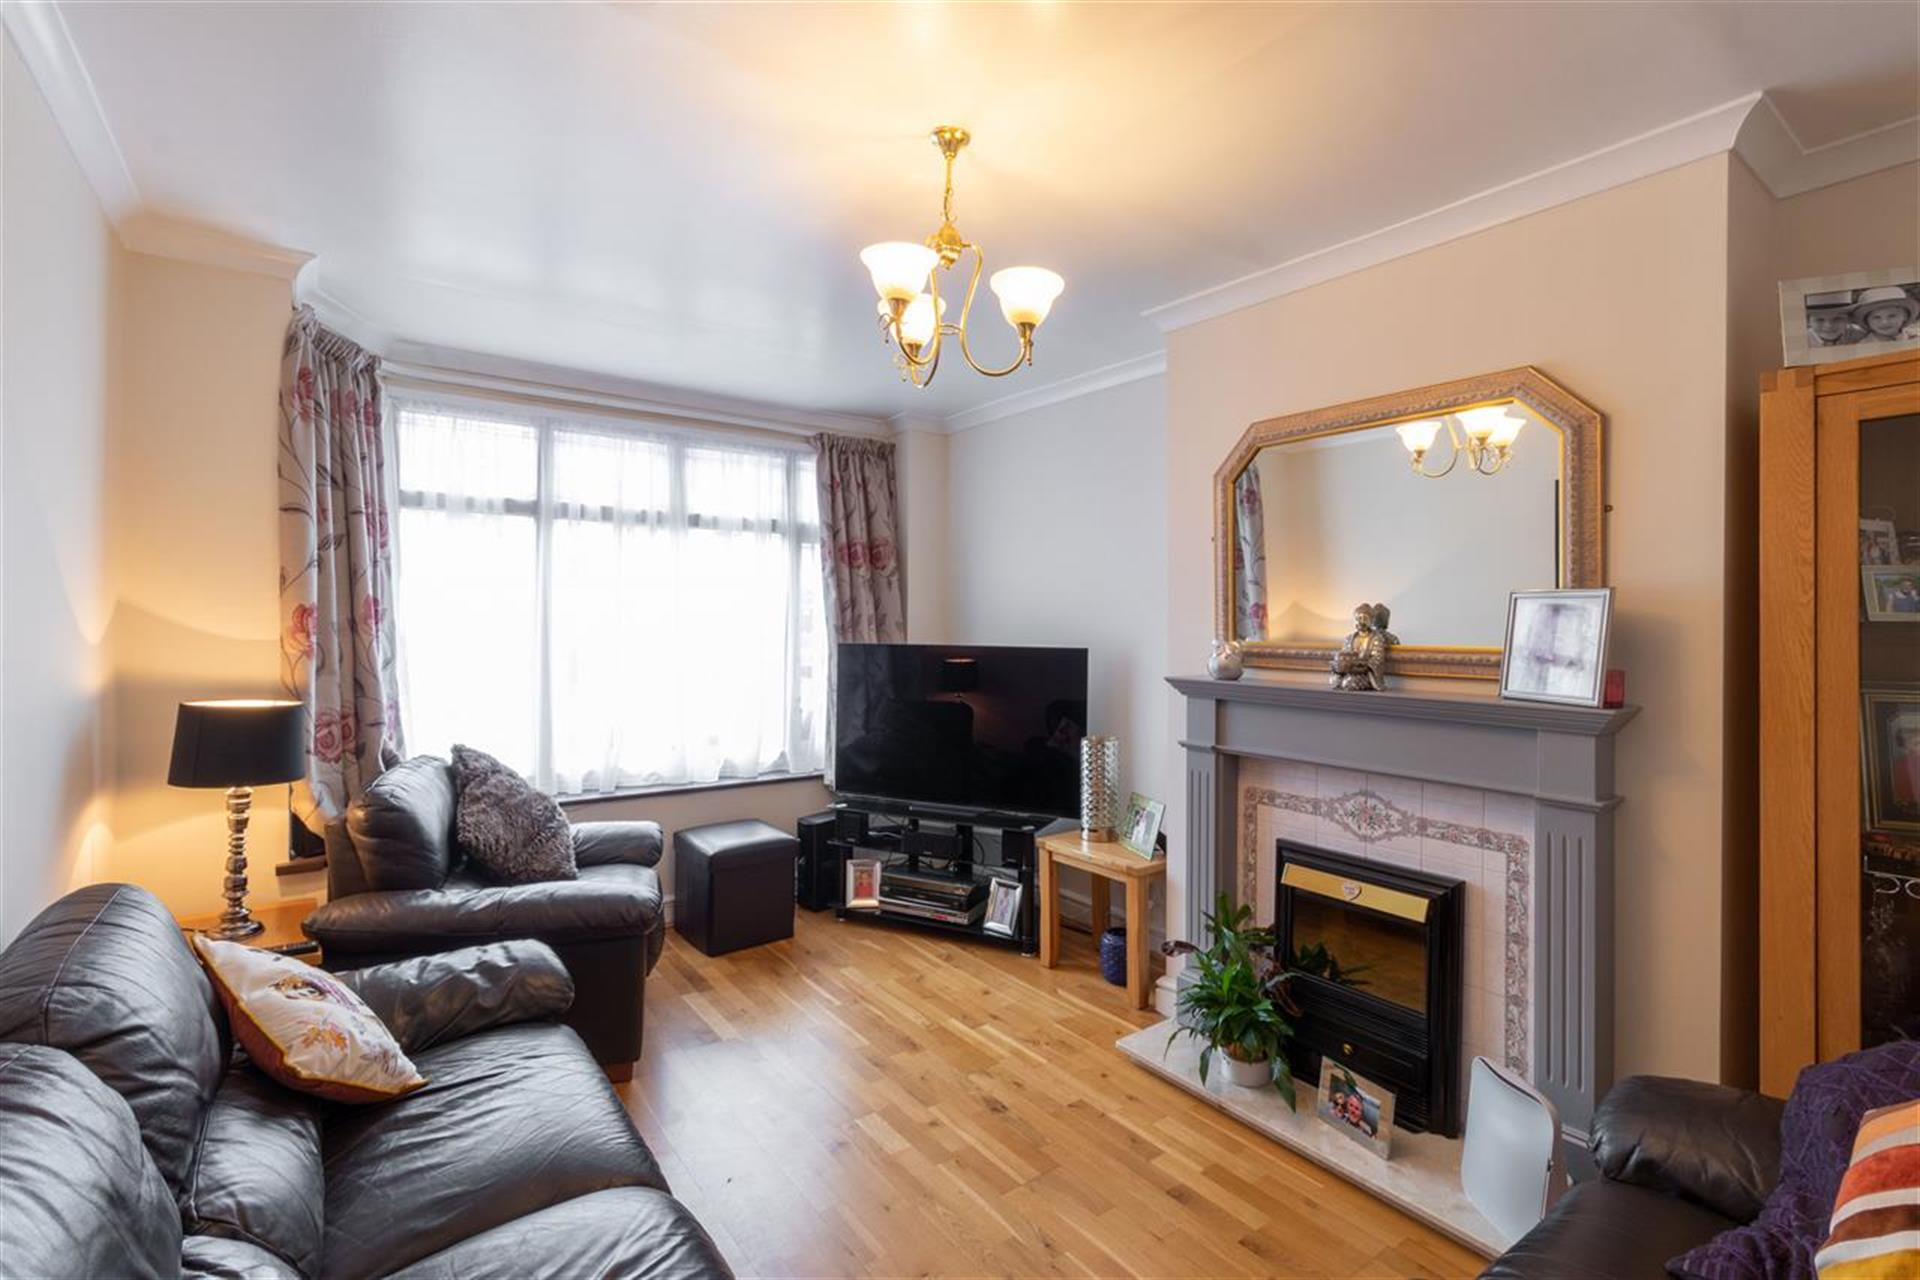 4 Bedroom Semi-detached House For Sale - Lounge